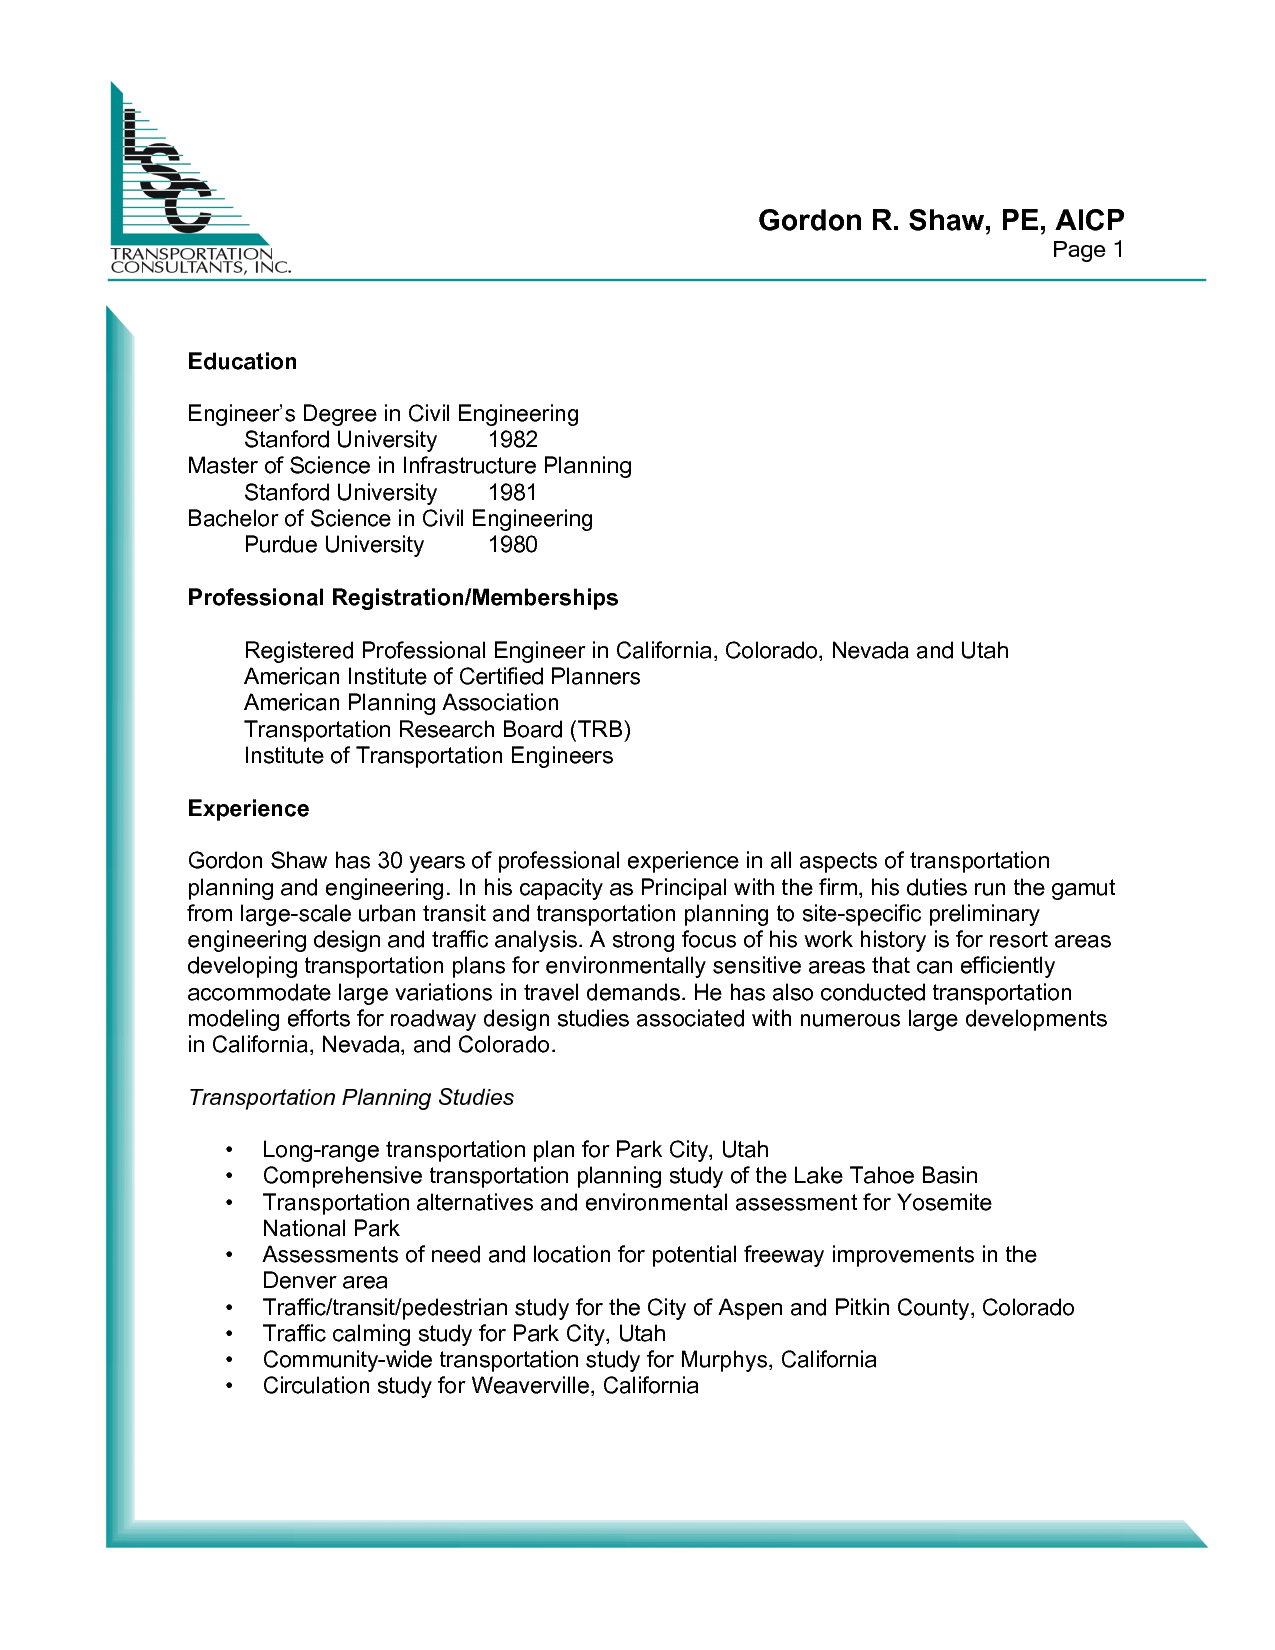 civil supervisor sample resume inclusion assistant for engineer luncheon flyer template samples engineering cover letter examples - Resume Writing Format In Pdf